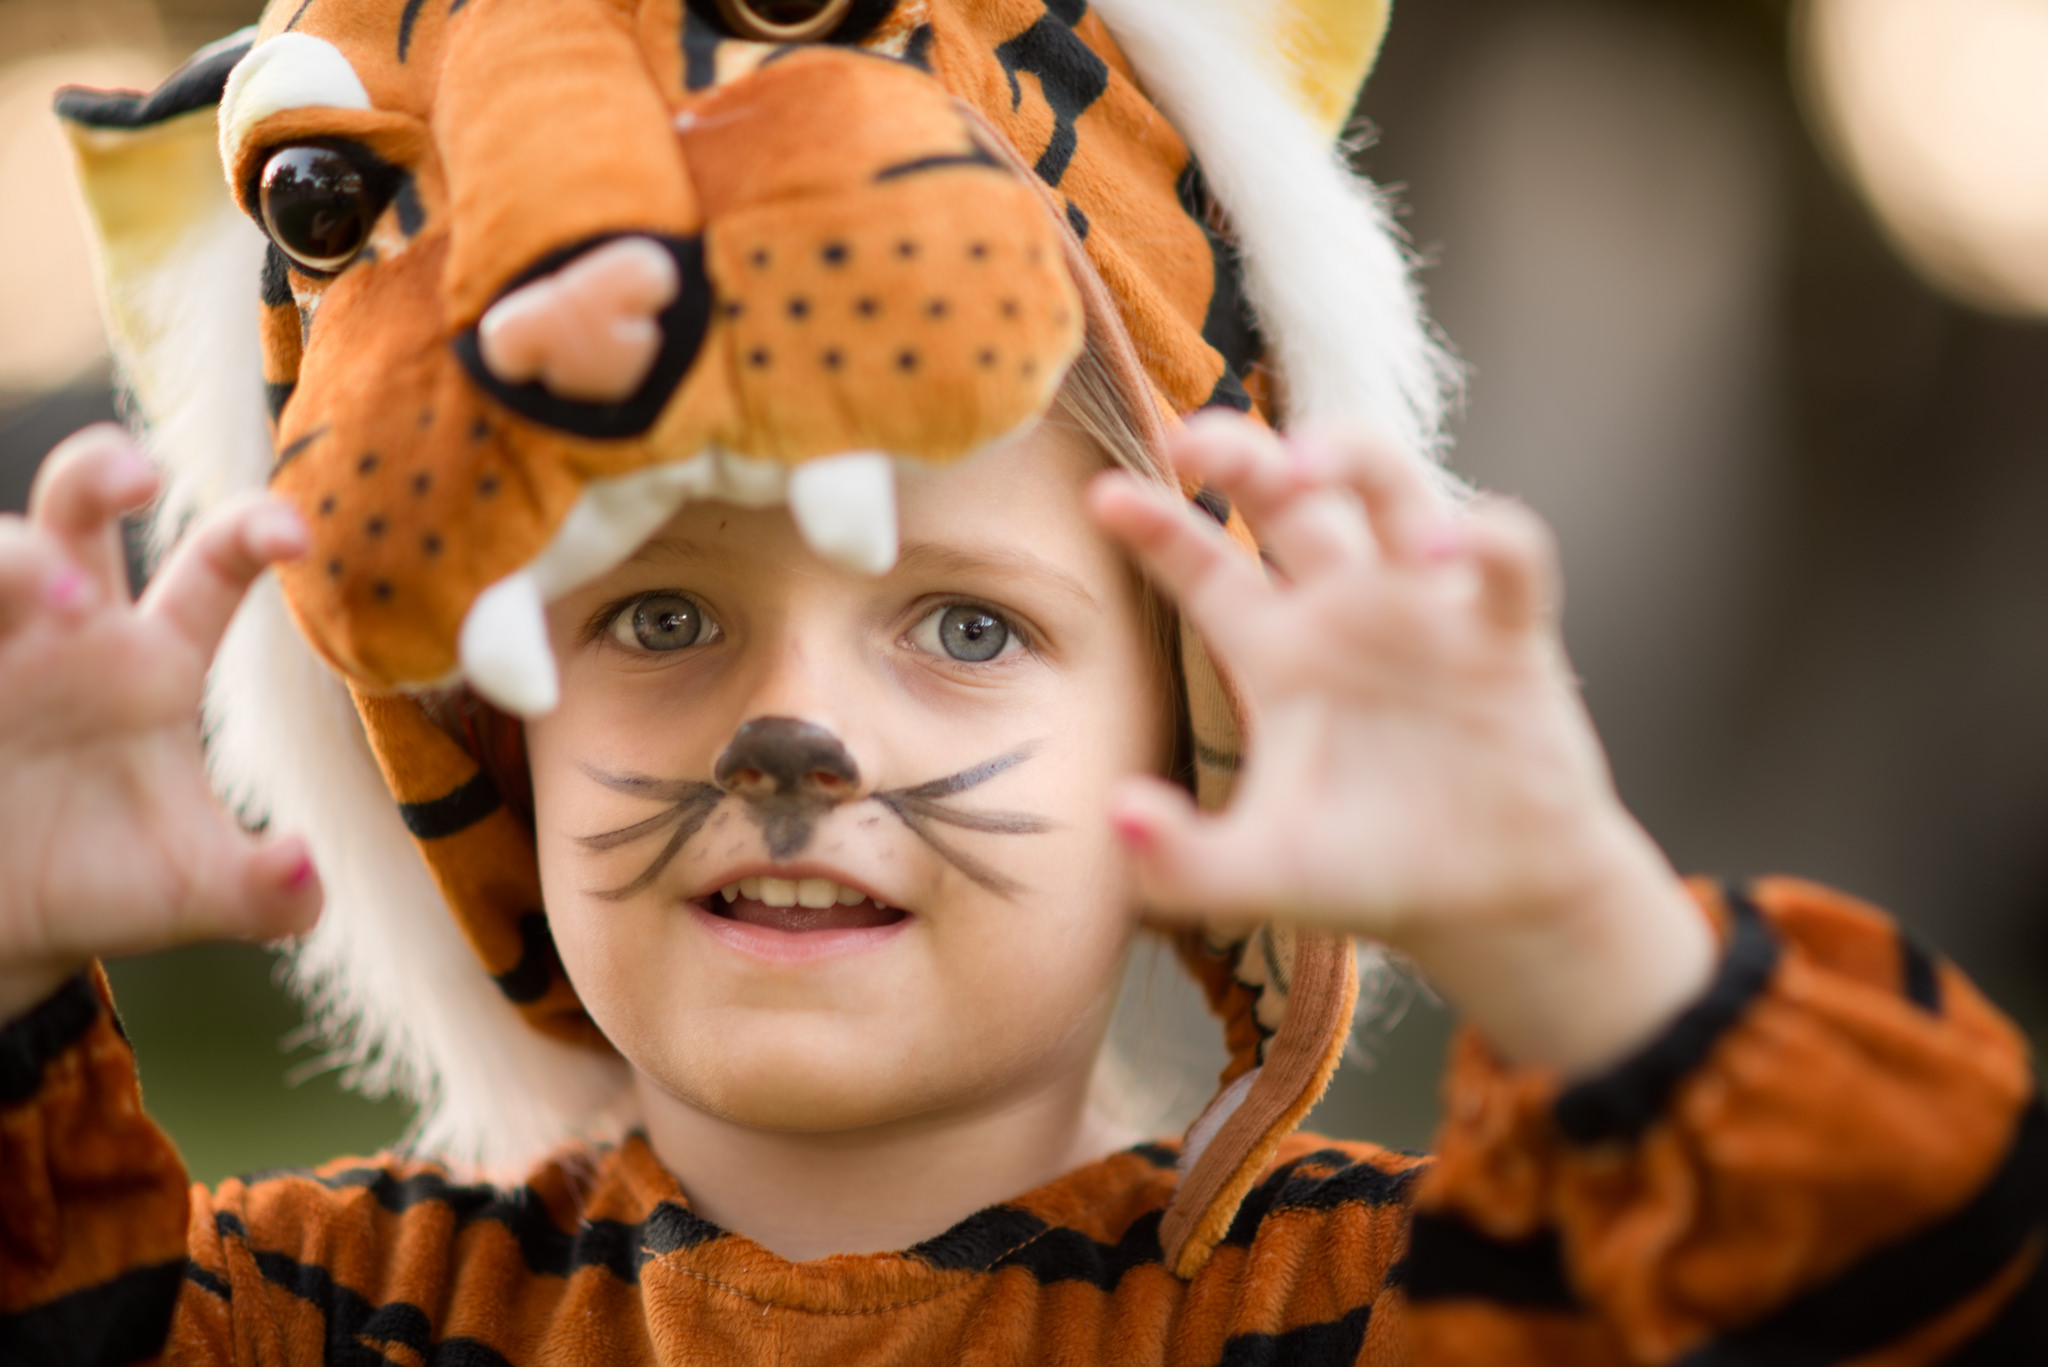 10 Face Painting Ideas That Are Totally Doable